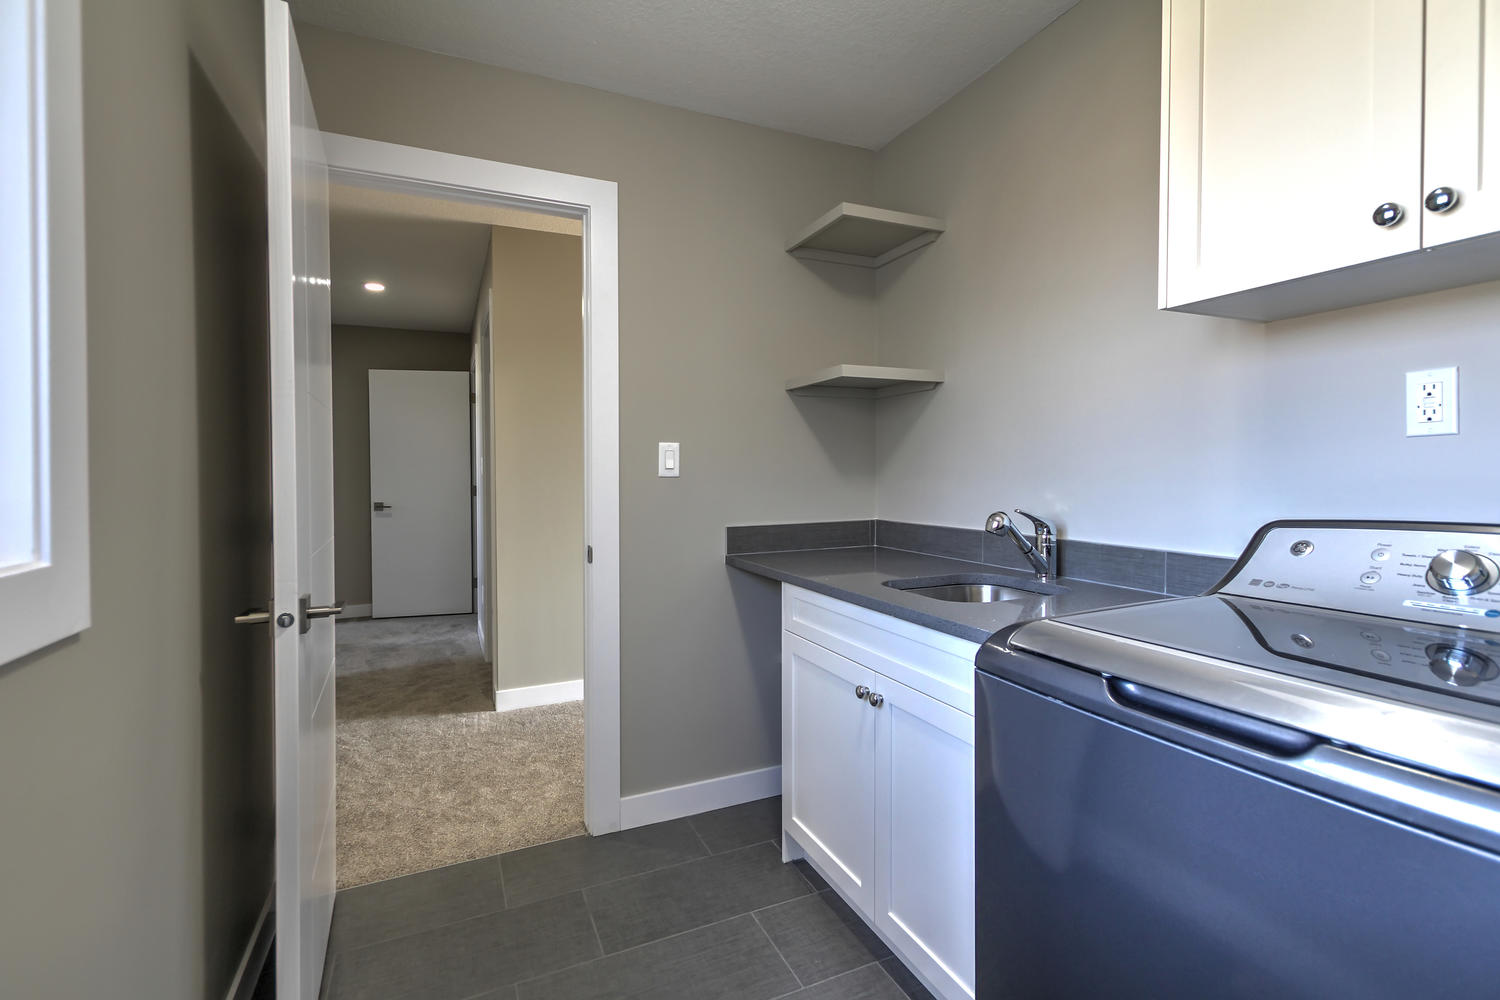 9603 106 Ave Morinville AB T8R-large-039-62-Laundry Room-1500x1000-72dpi.jpg